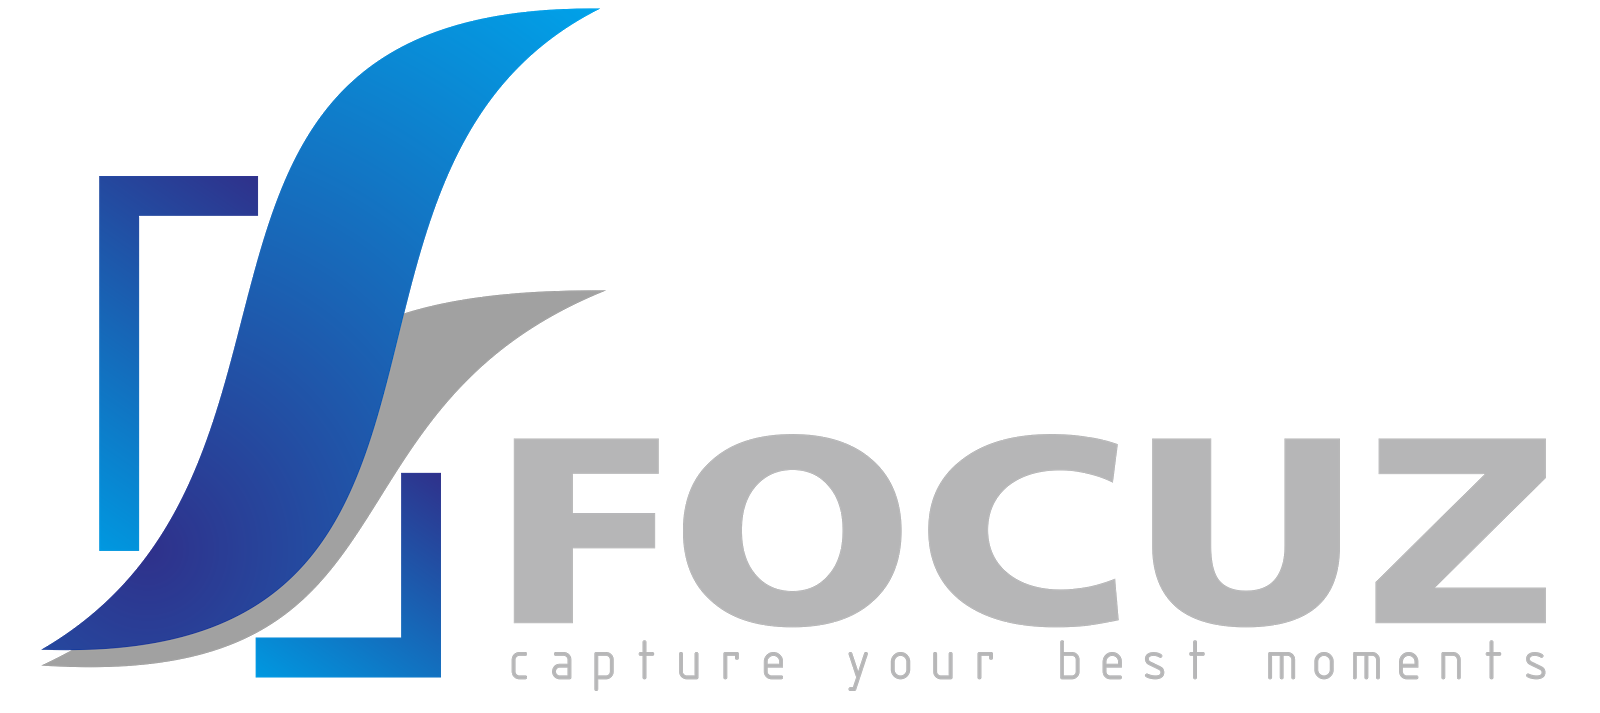 Focuz Photo Gallery